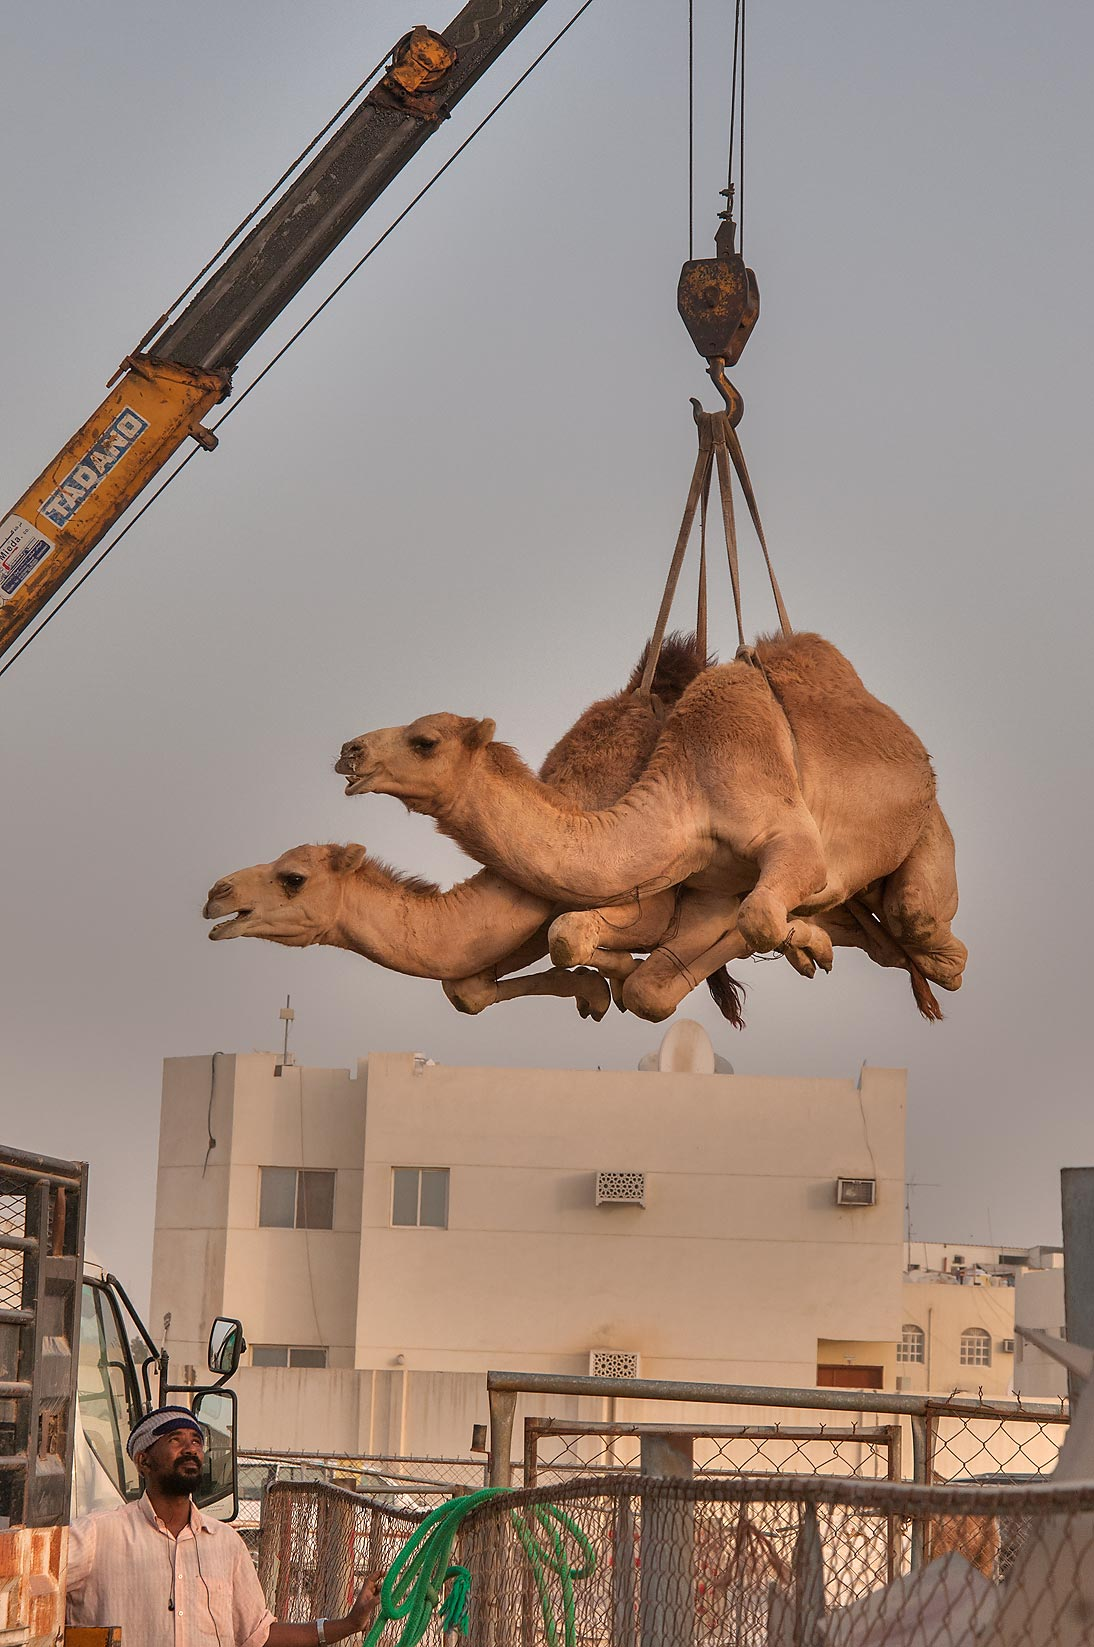 Camels lifted in air by hydraulic crane in Camel...Wholesale Markets area. Doha, Qatar